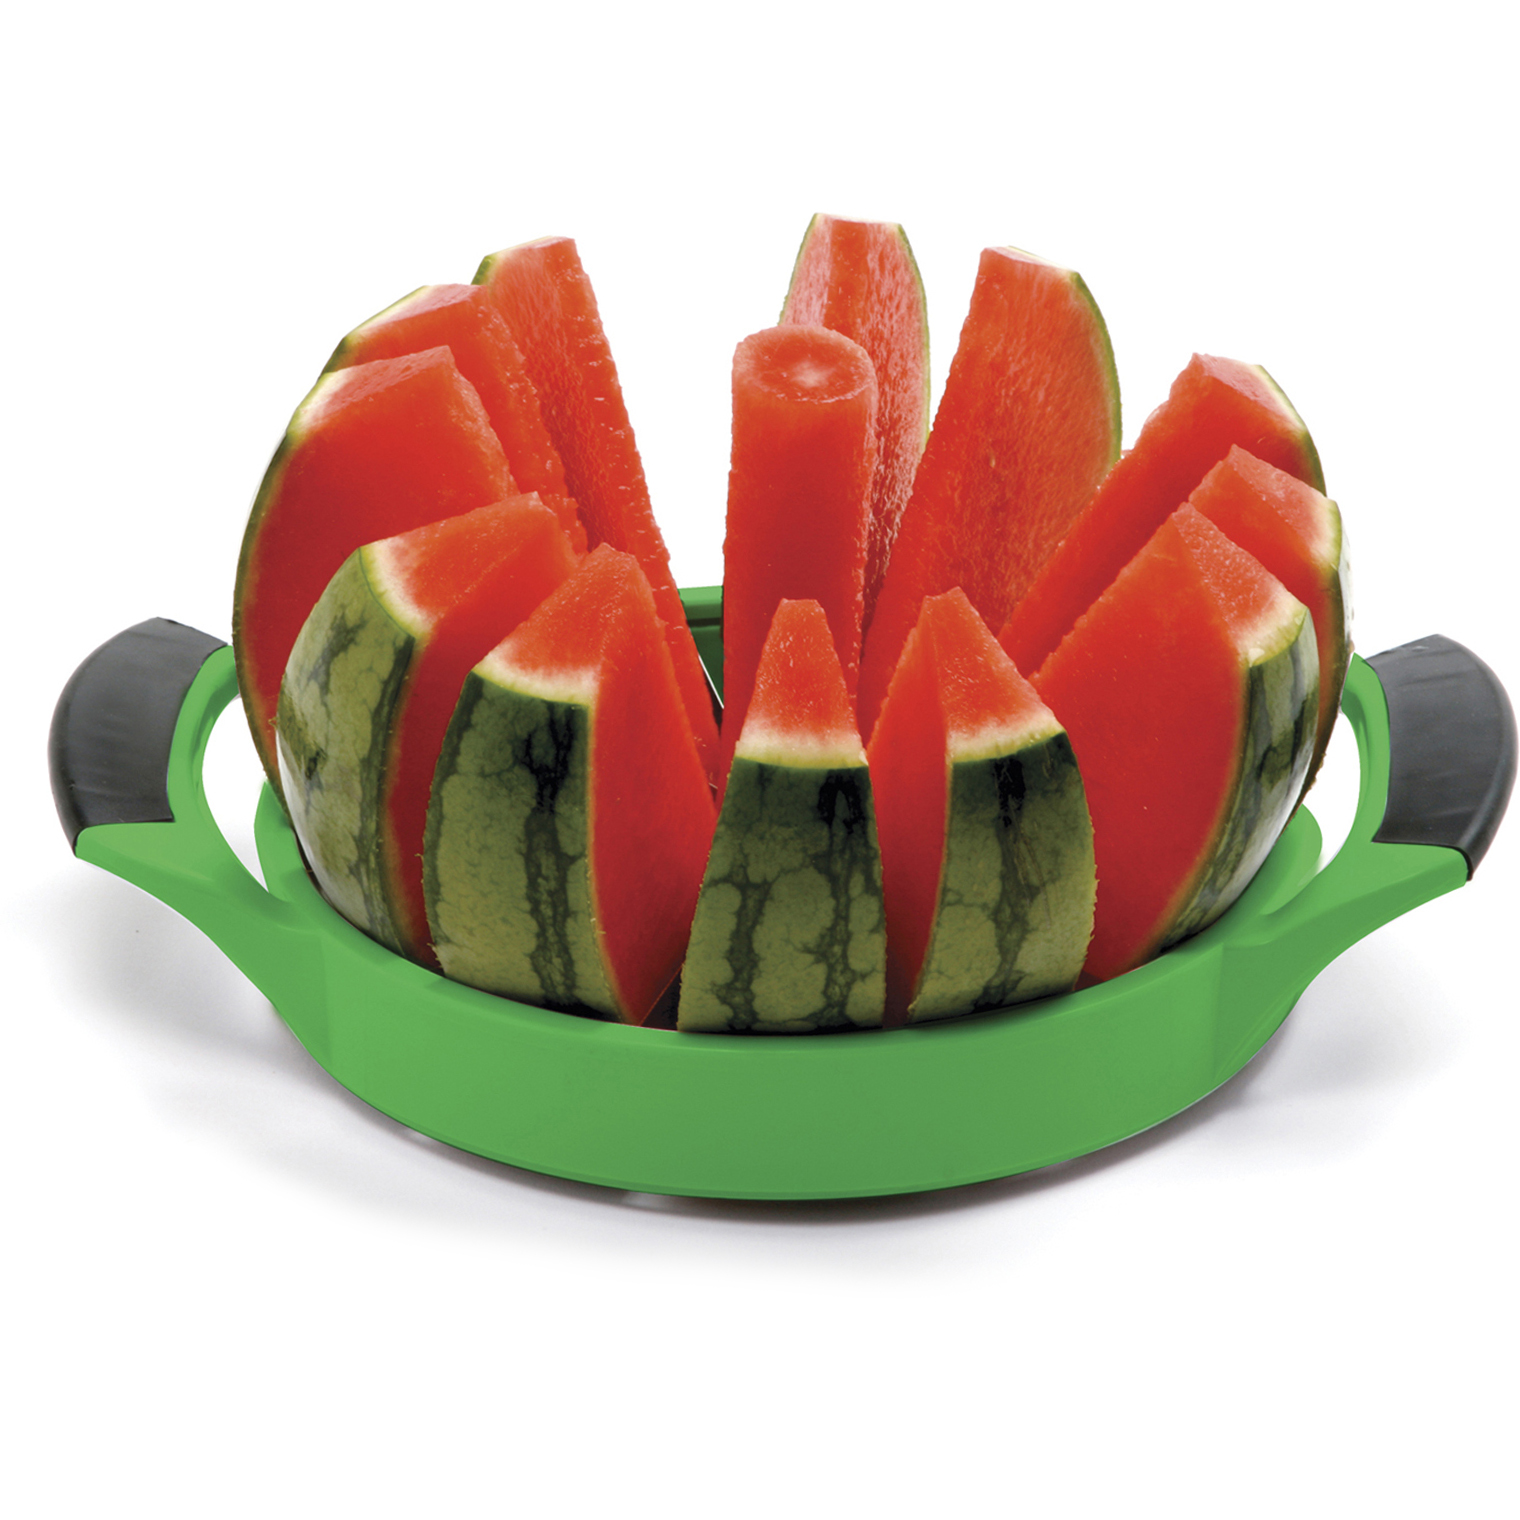 Norpro Grip-EZ Green Plastic and Stainless Steel Melon Cutter